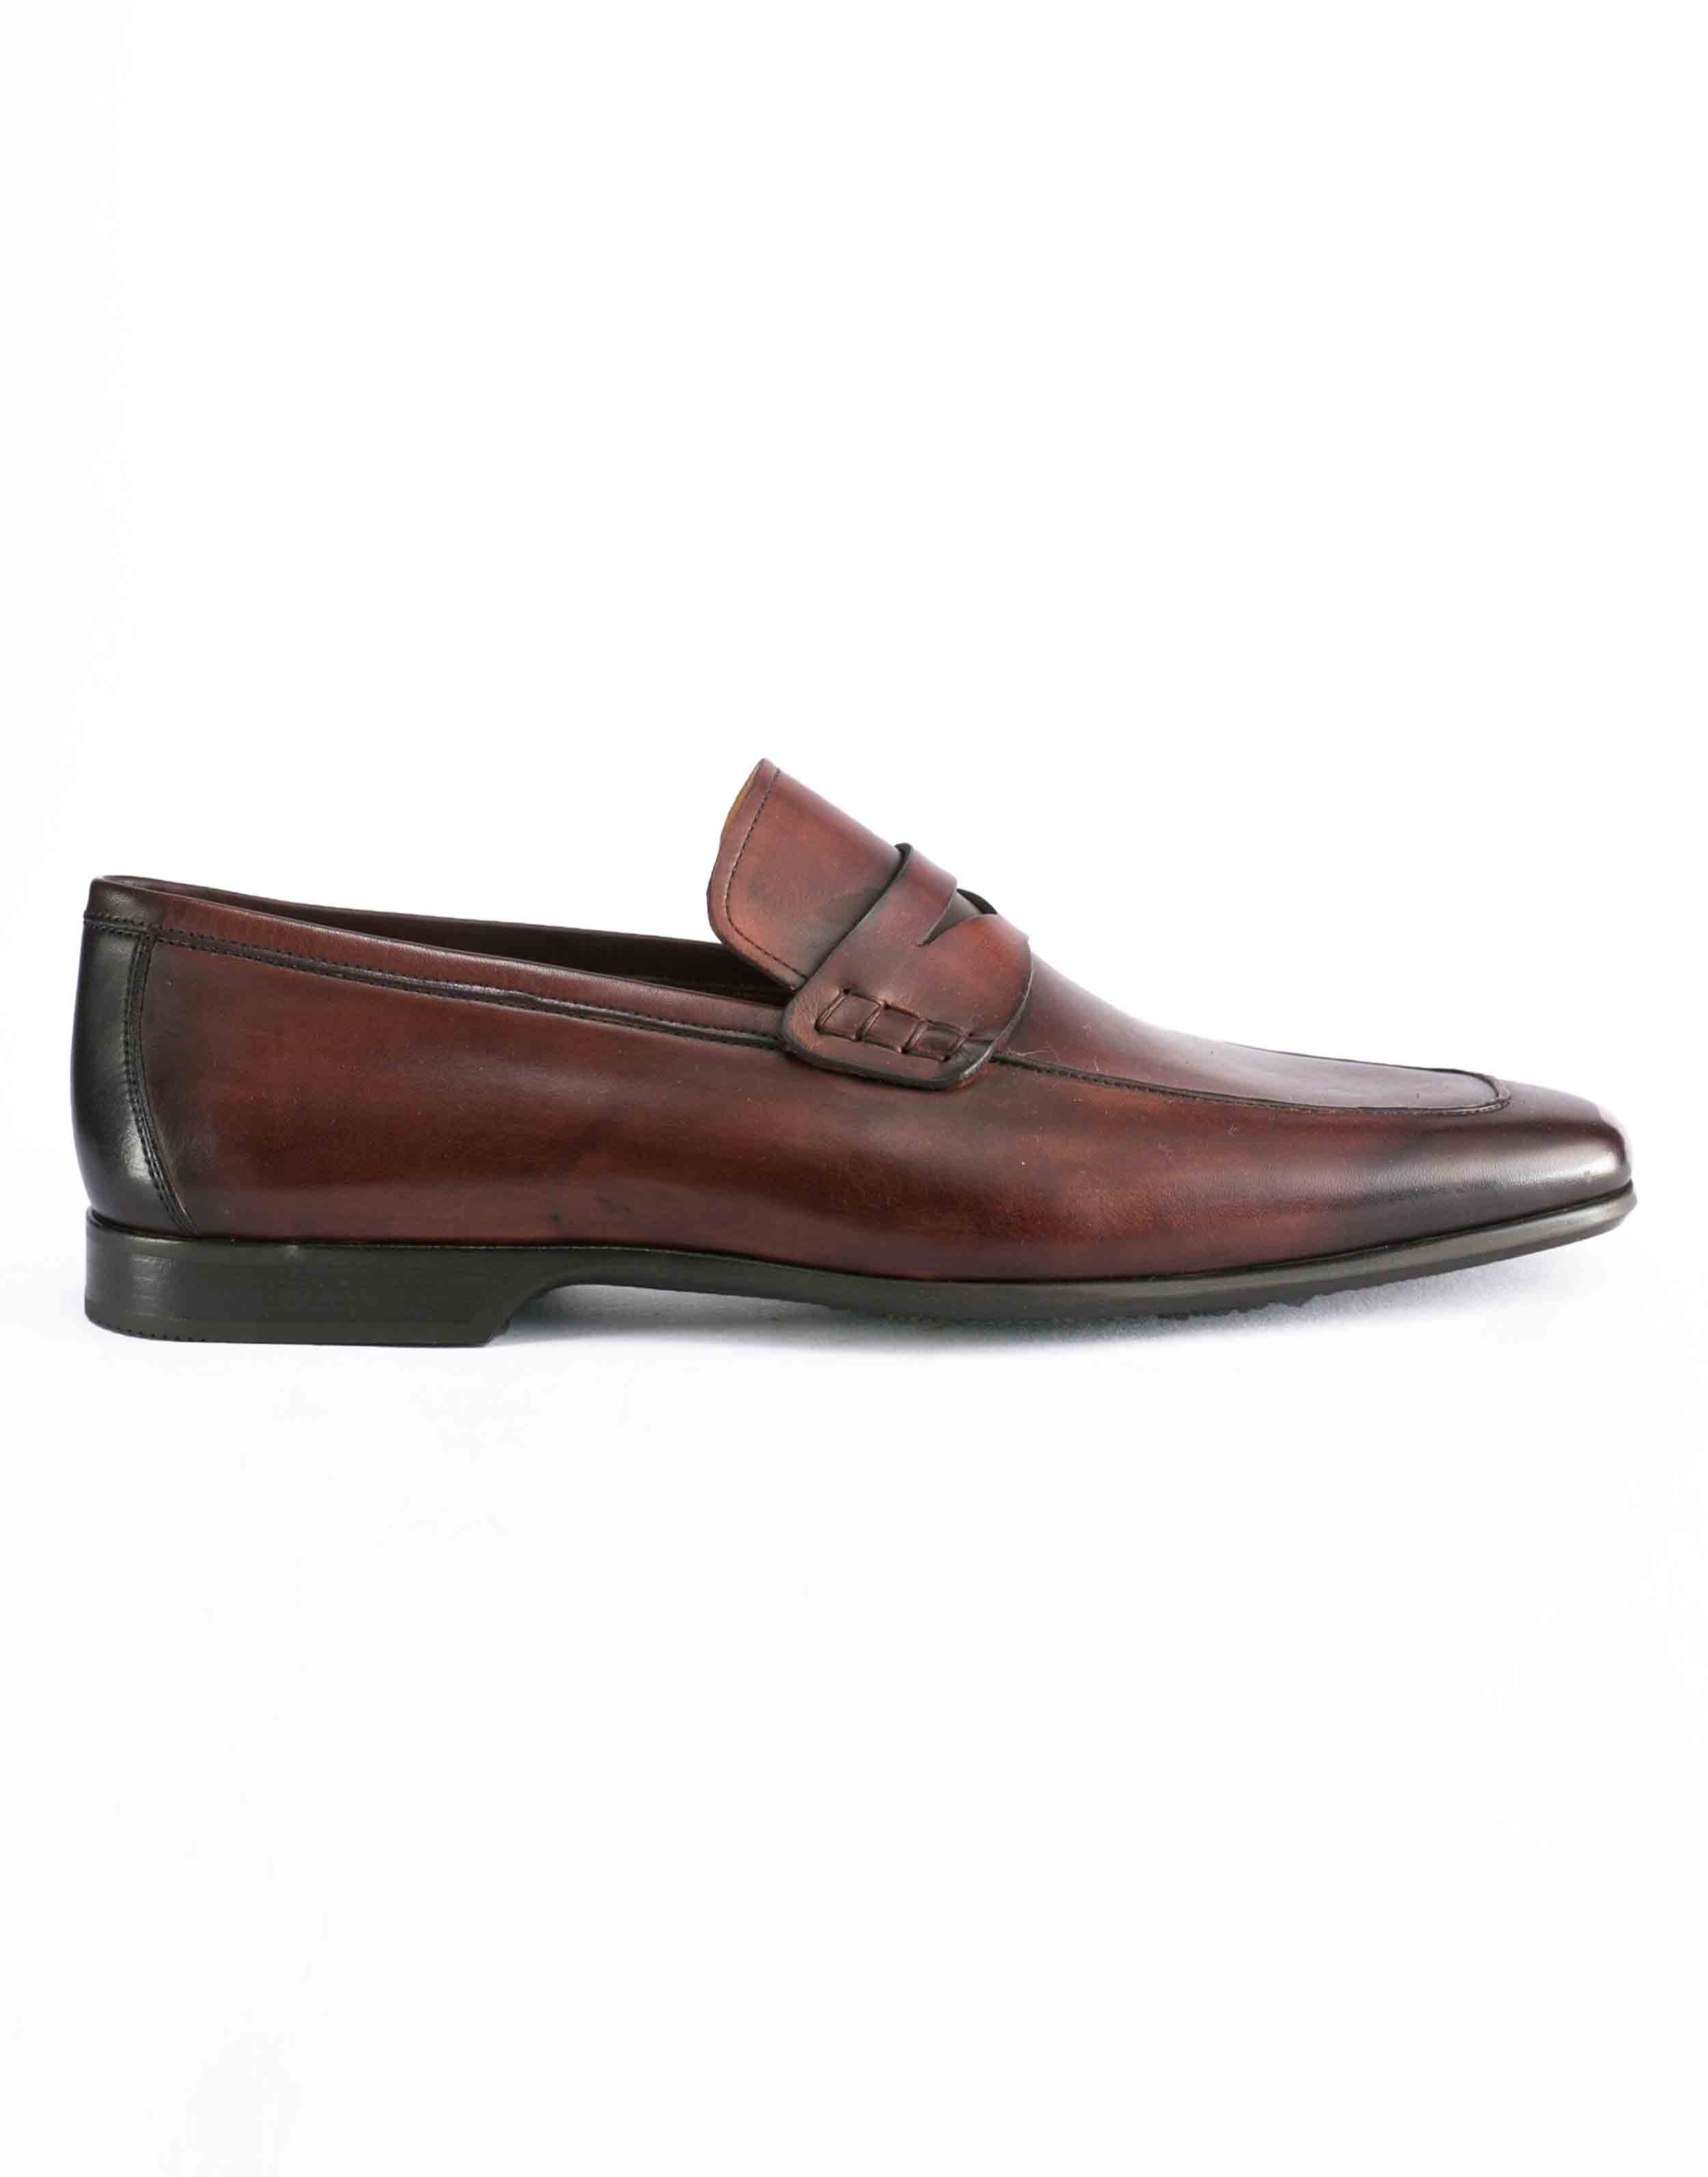 APRON TOE MID BROWN PENNY LOAFER1